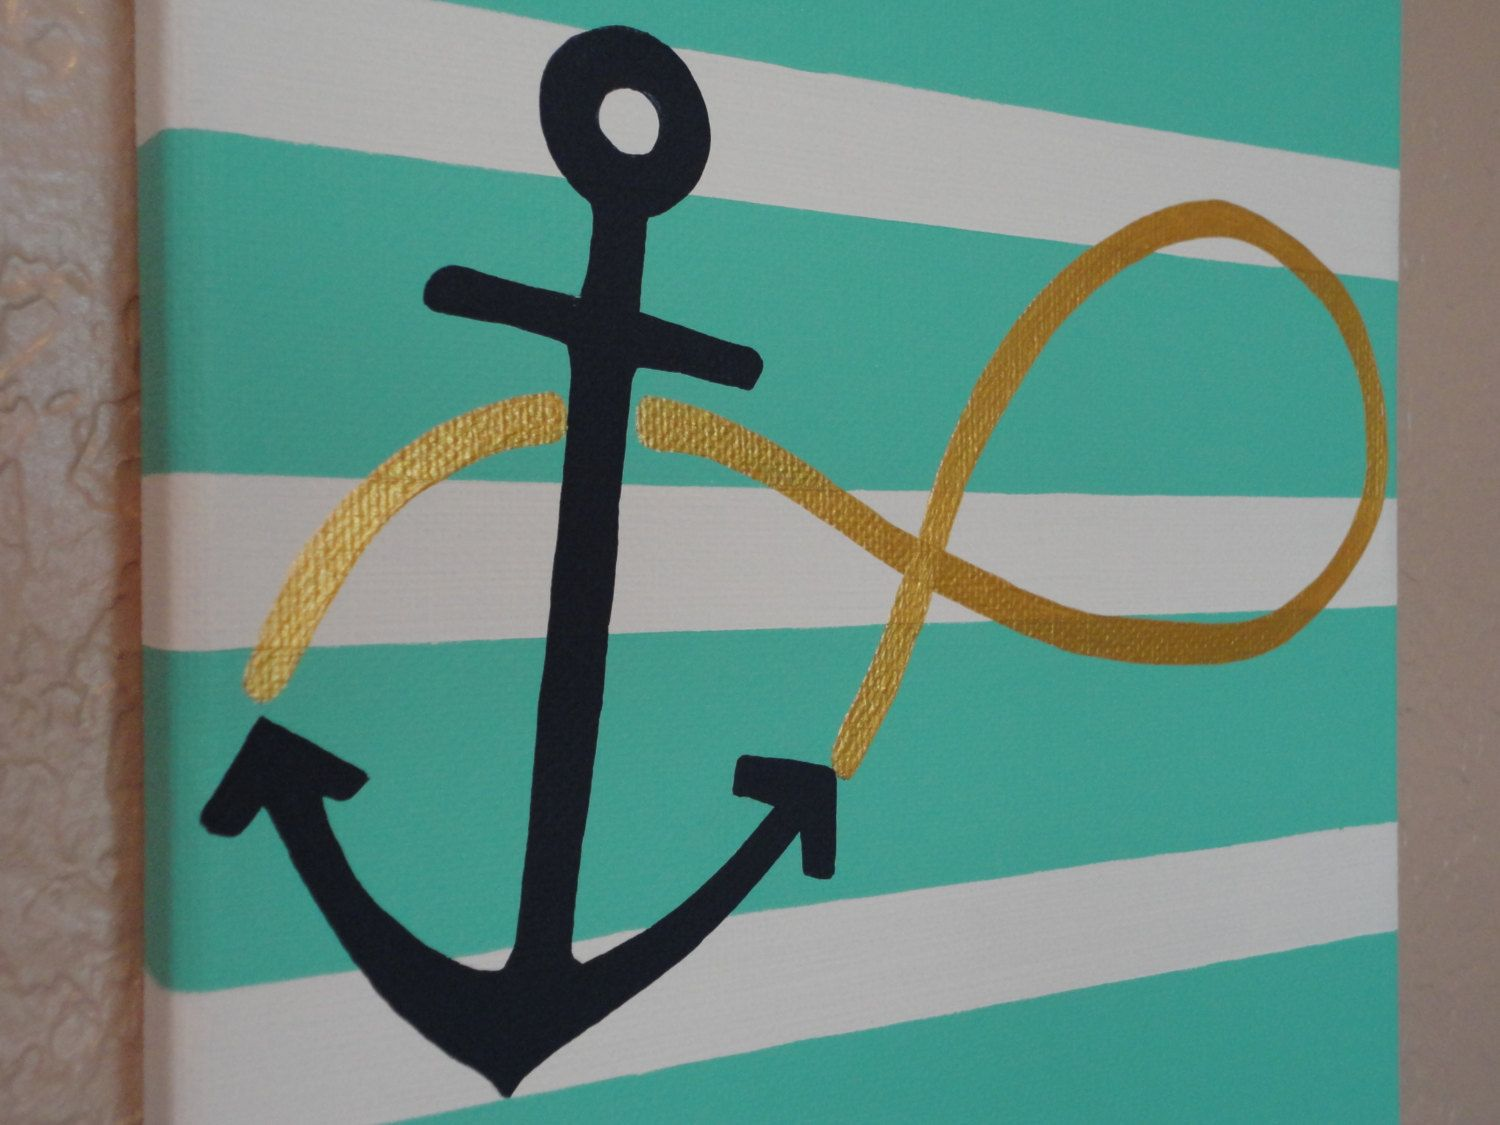 New 8x10 Hand Painted Infinity Anchor Canvas By Wallroved 16 00